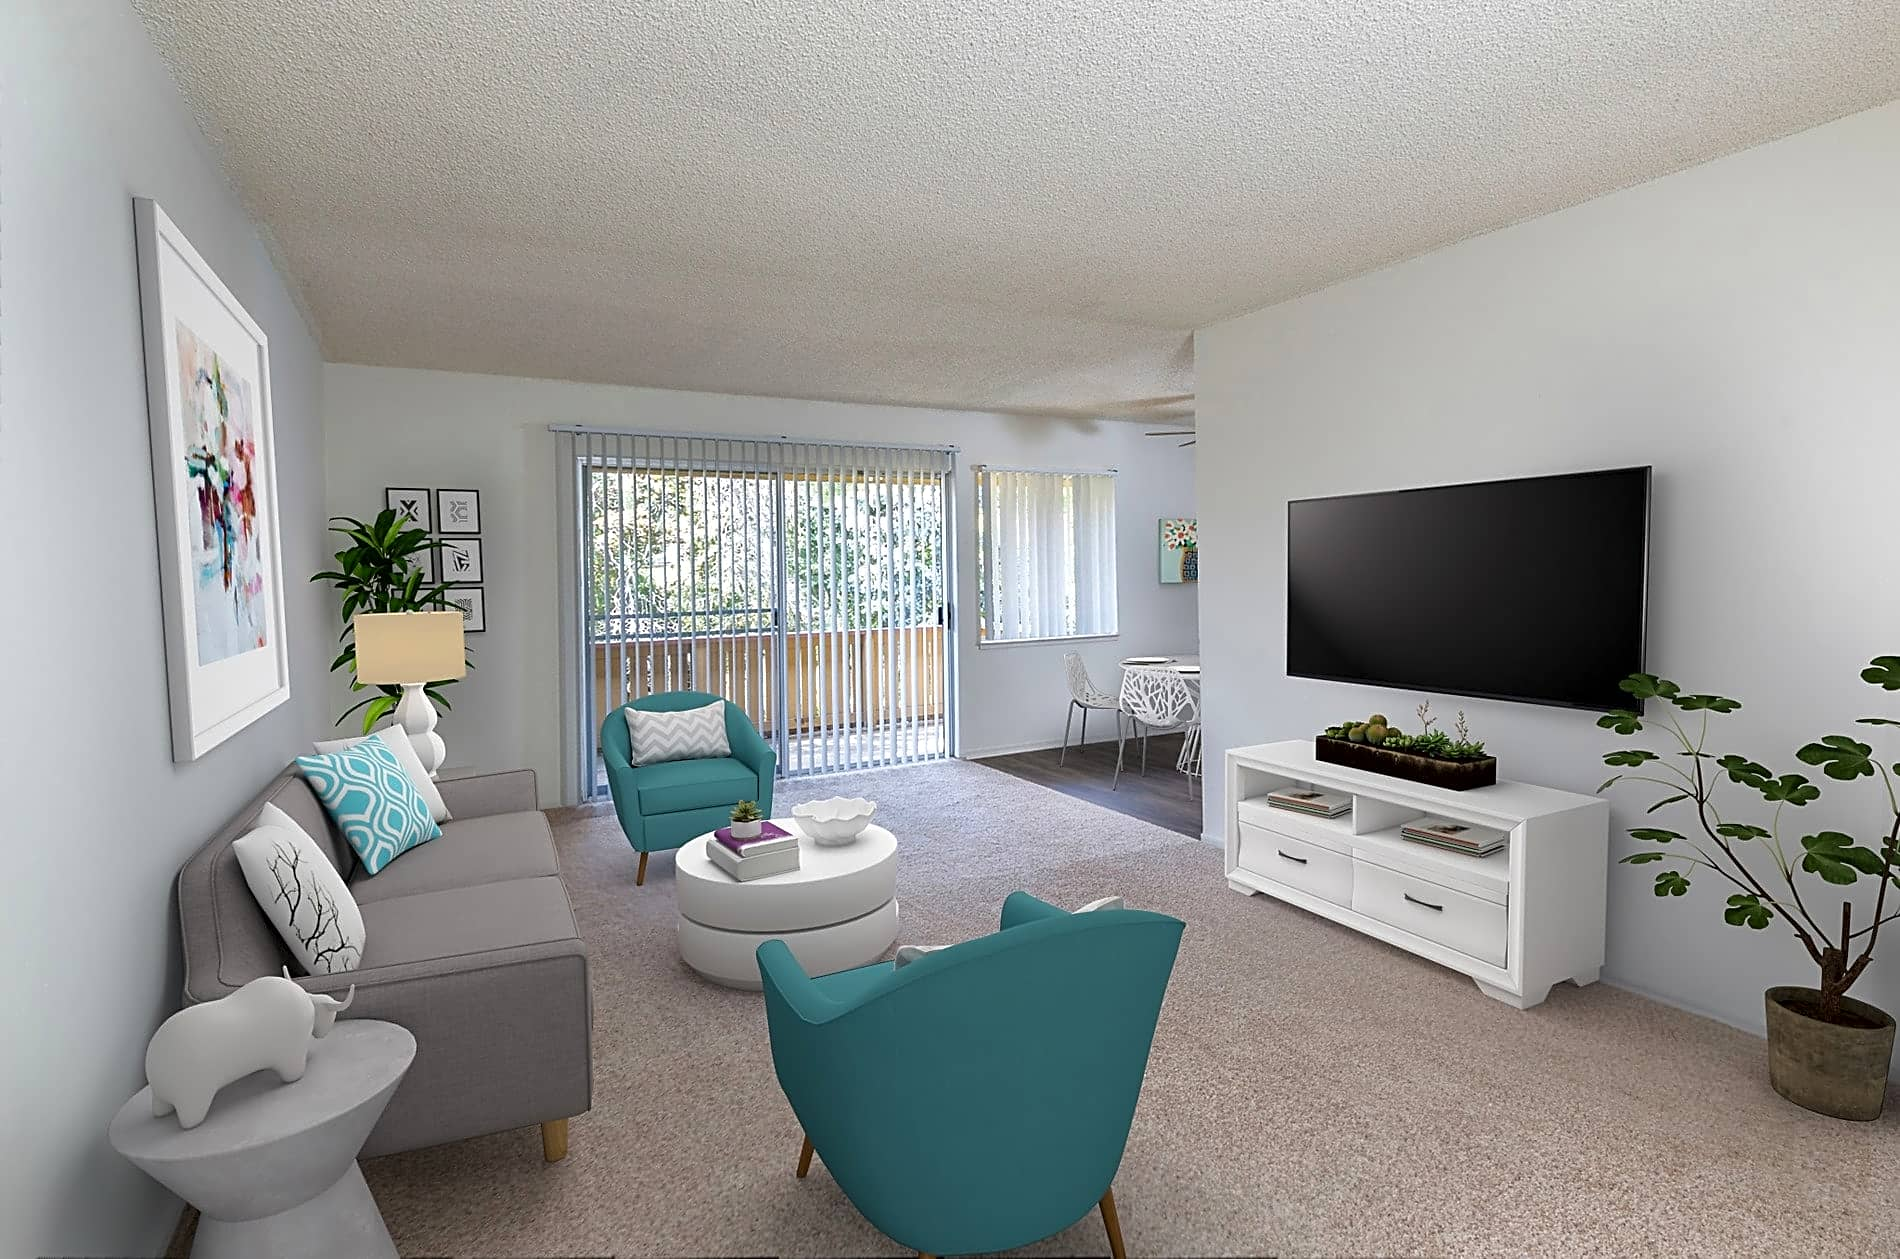 Apartments Near Foothill Birch Creek for Foothill College Students in Los Altos Hills, CA